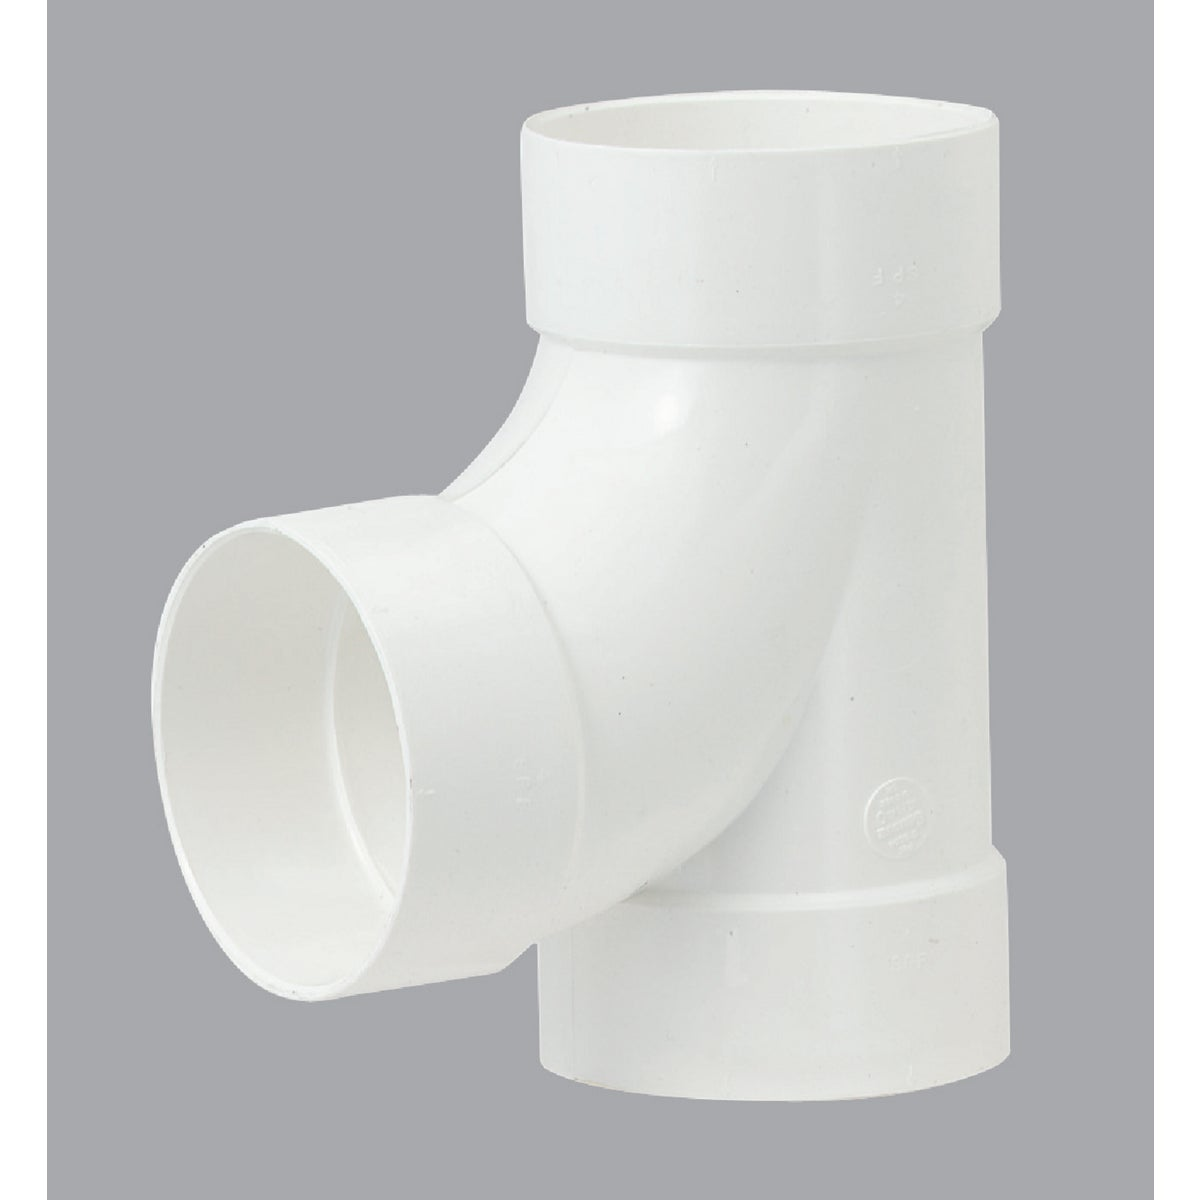 "6"" S&D PVC SANITARY TEE - 41160 by Genova Inc"